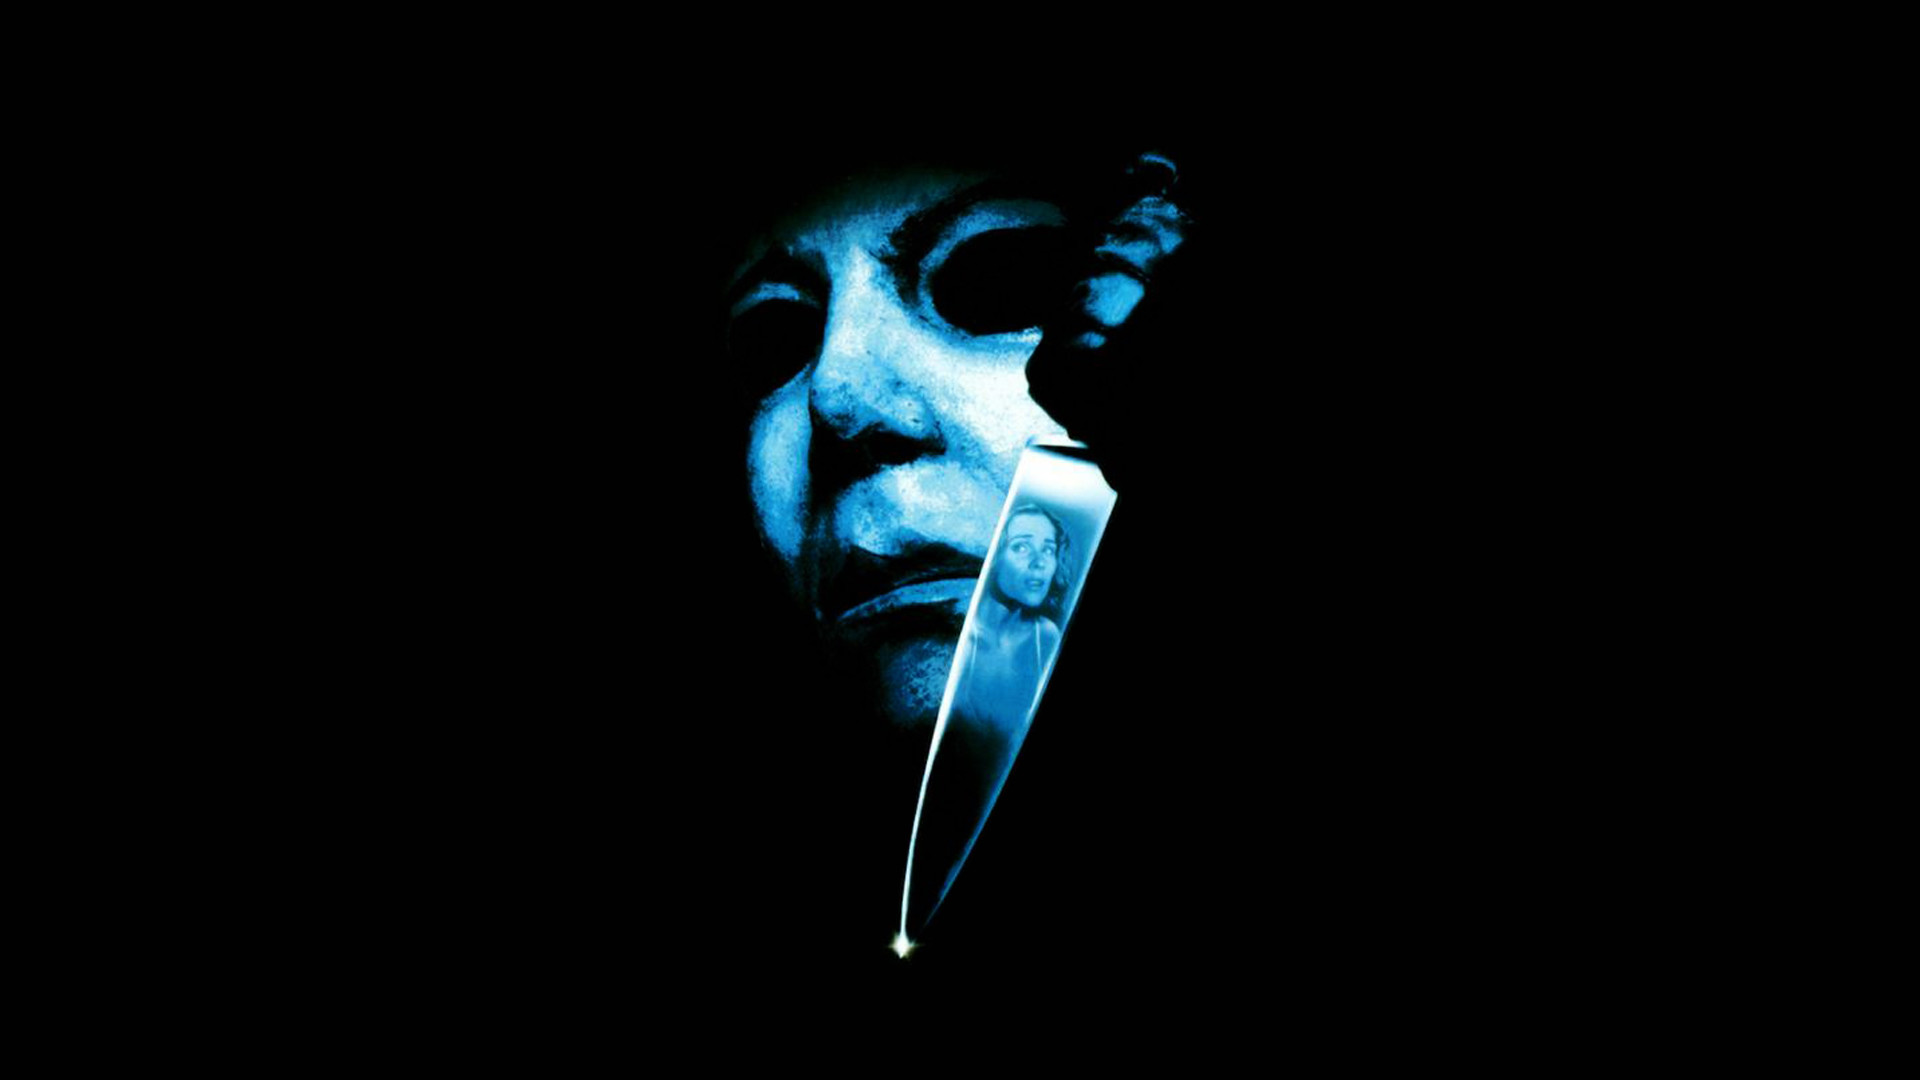 Horror Movie Backgrounds ① Wallpapertag